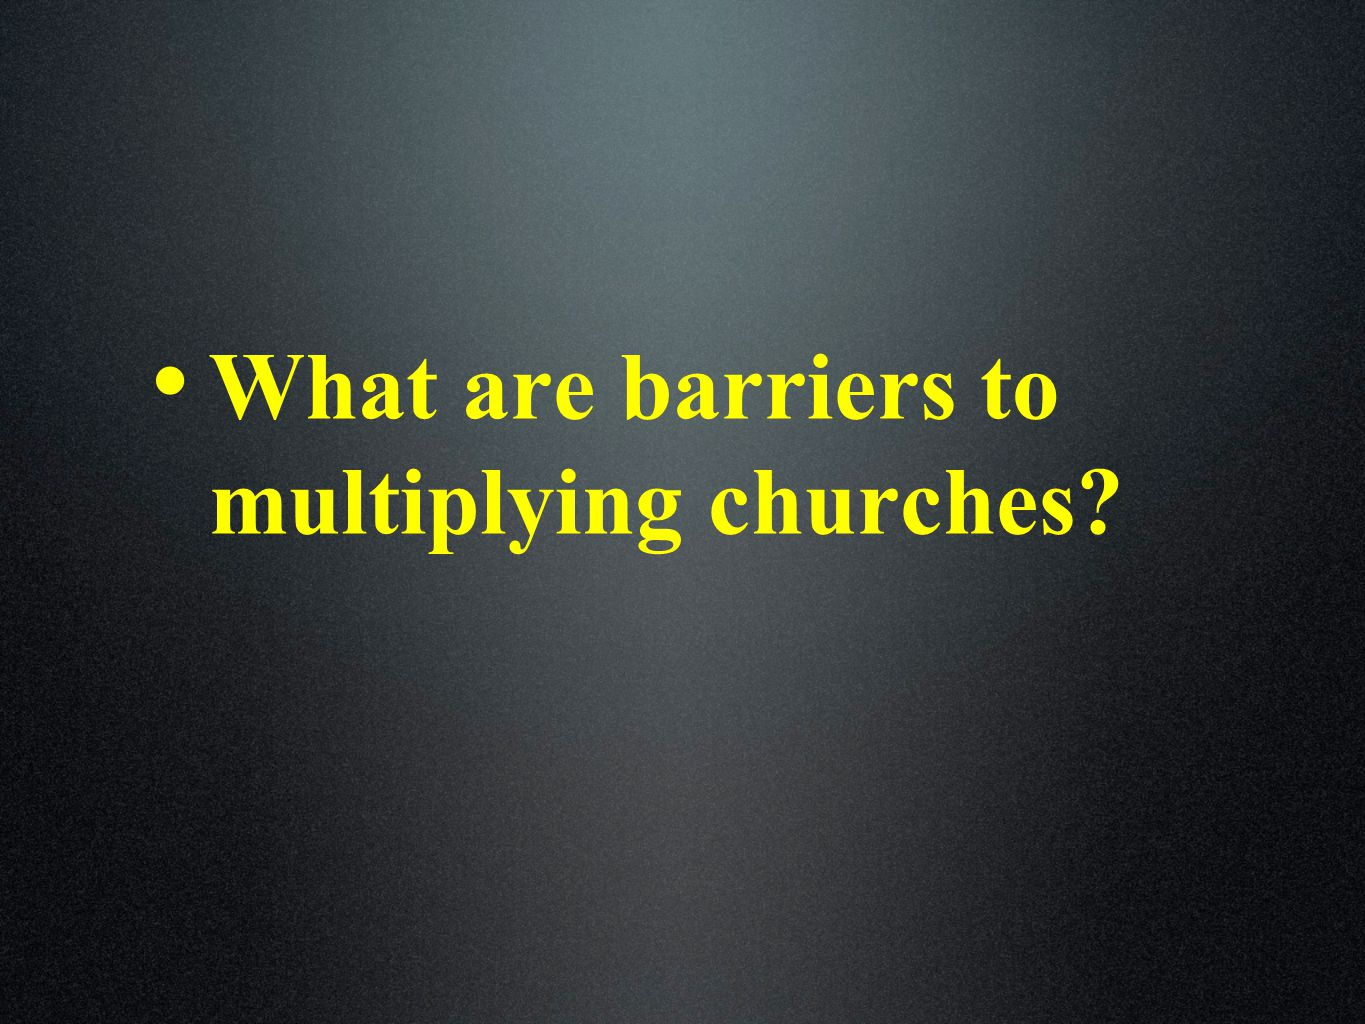 What are barriers to multiplying churches